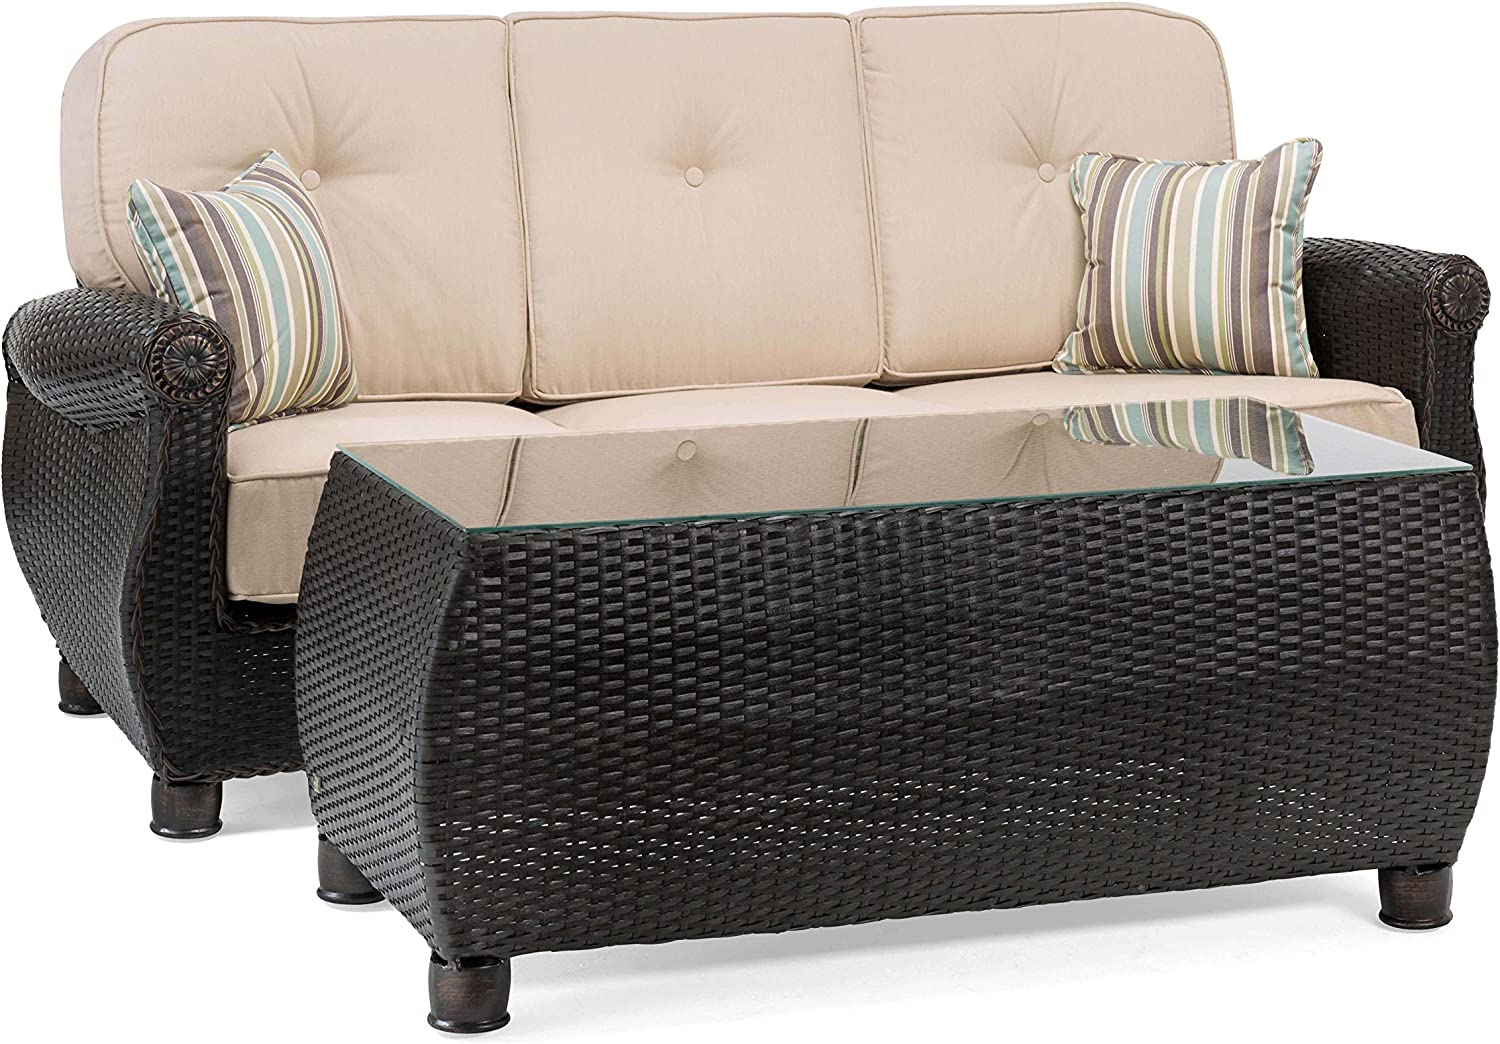 La-Z-Boy Outdoor ABRE CT-N Patio Sofa Set, Natural Tan